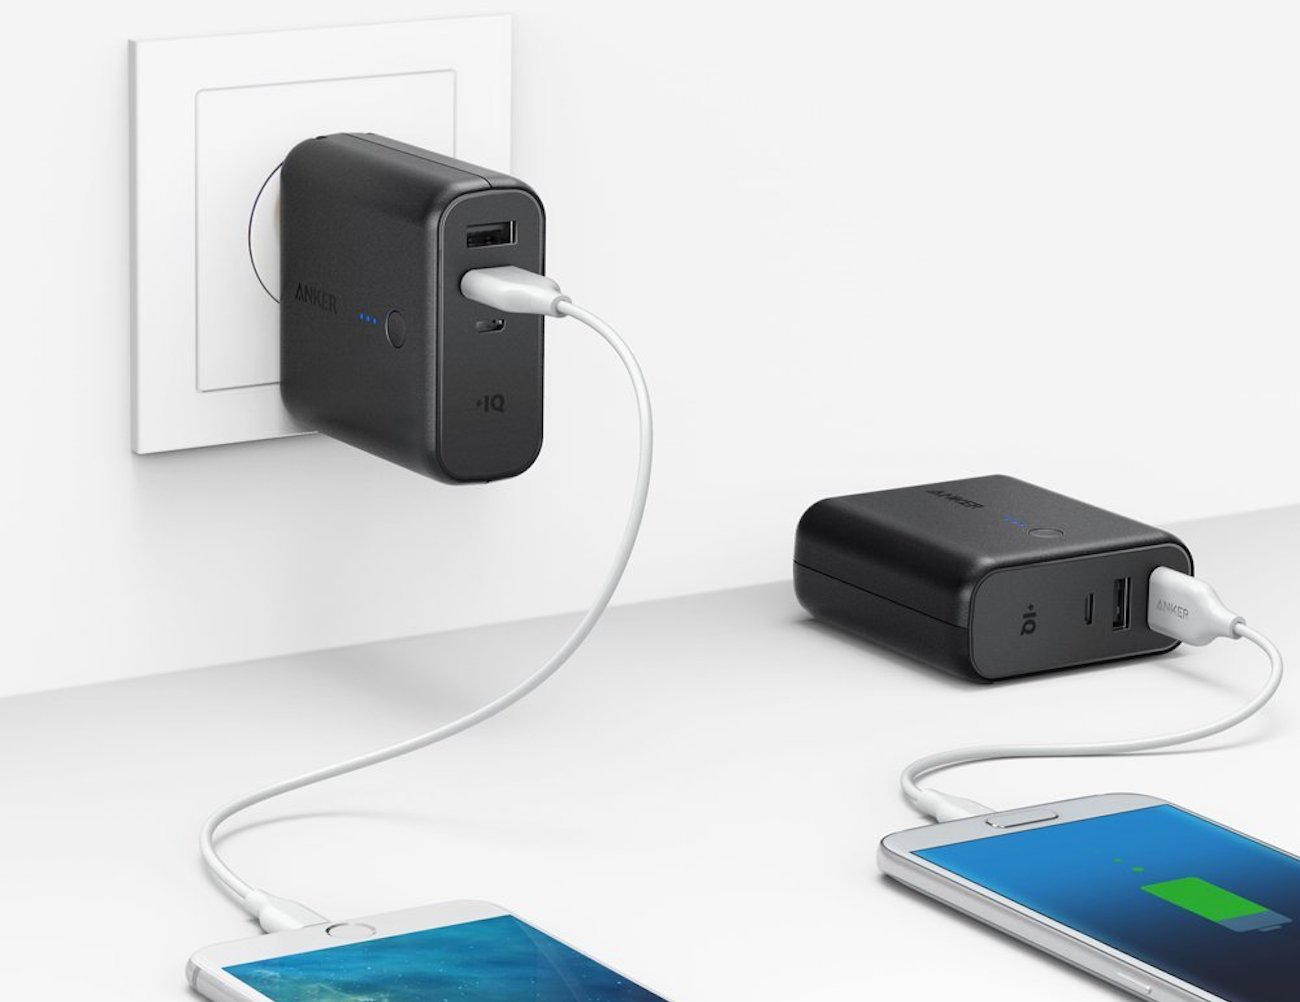 Anker PowerCore Fusion Portable Charger